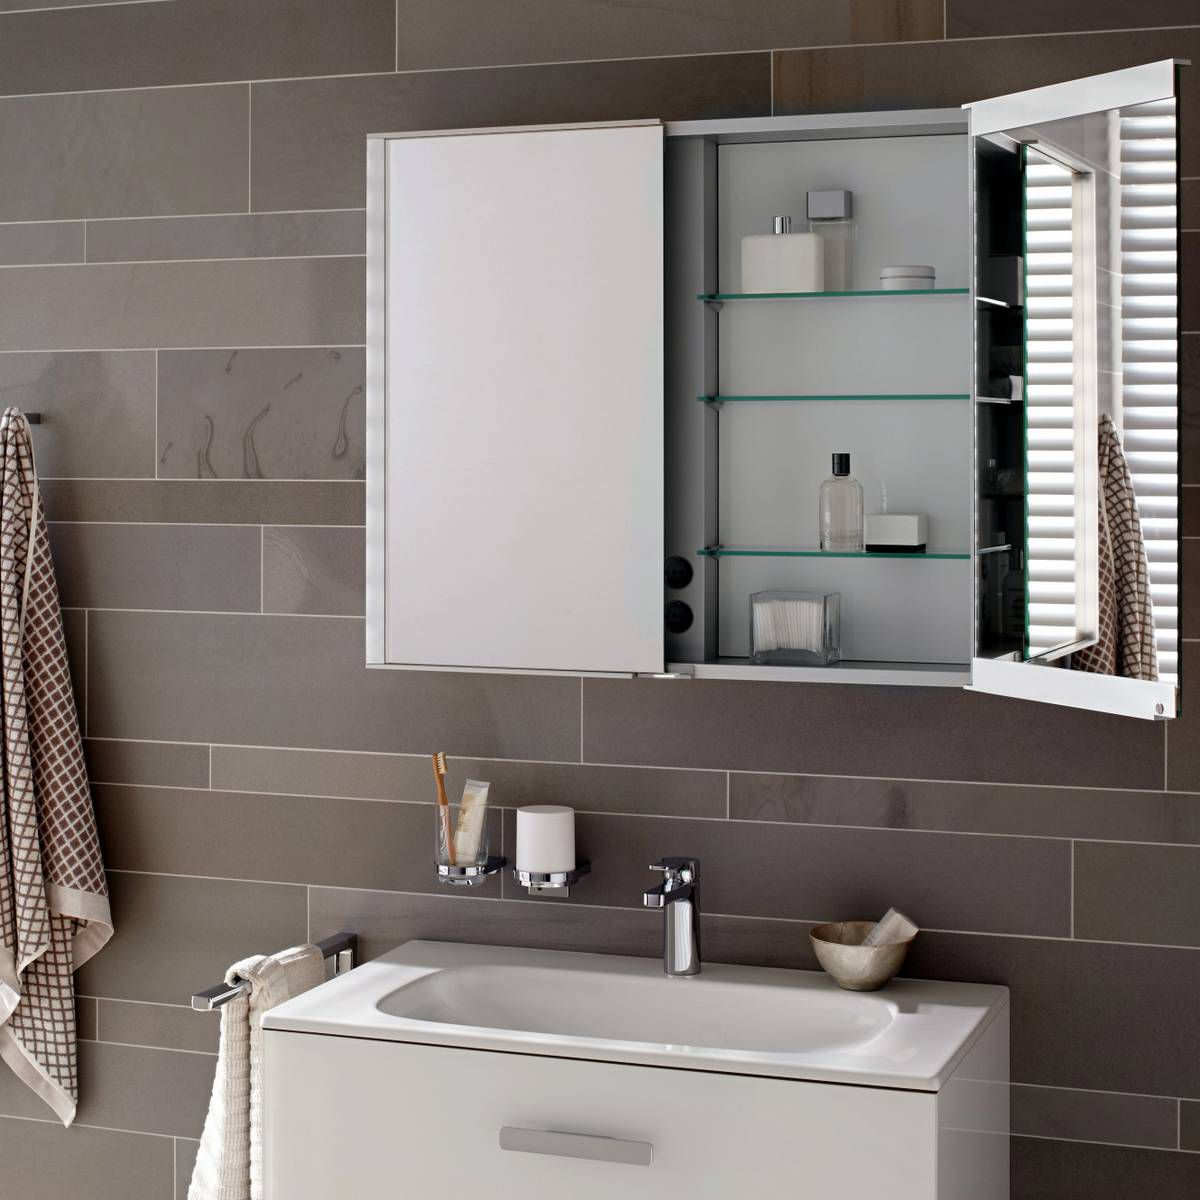 keuco bathroom cabinets keuco royal match mirror cabinet uk bathrooms 13299